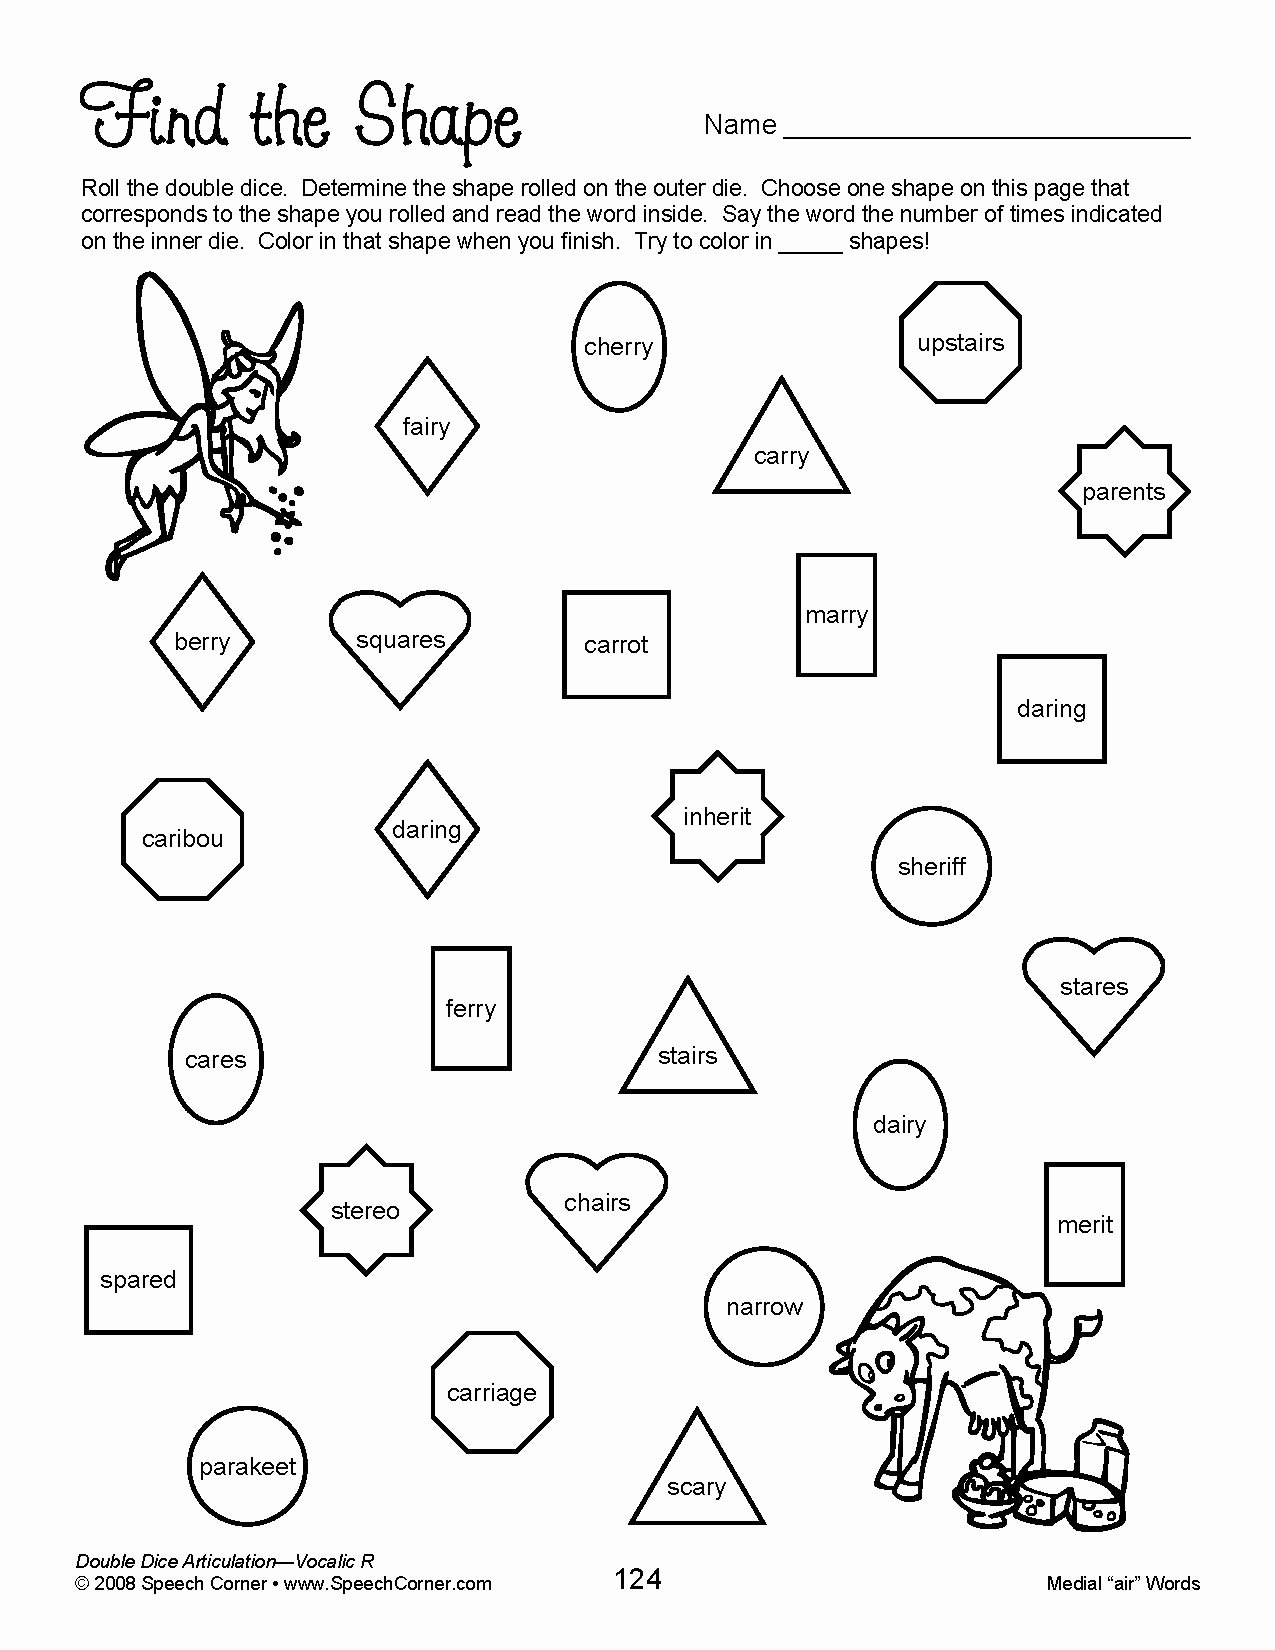 Speech Worksheets for Preschoolers Unique Speech Corner Double Dice Articulation Vocalic Educational